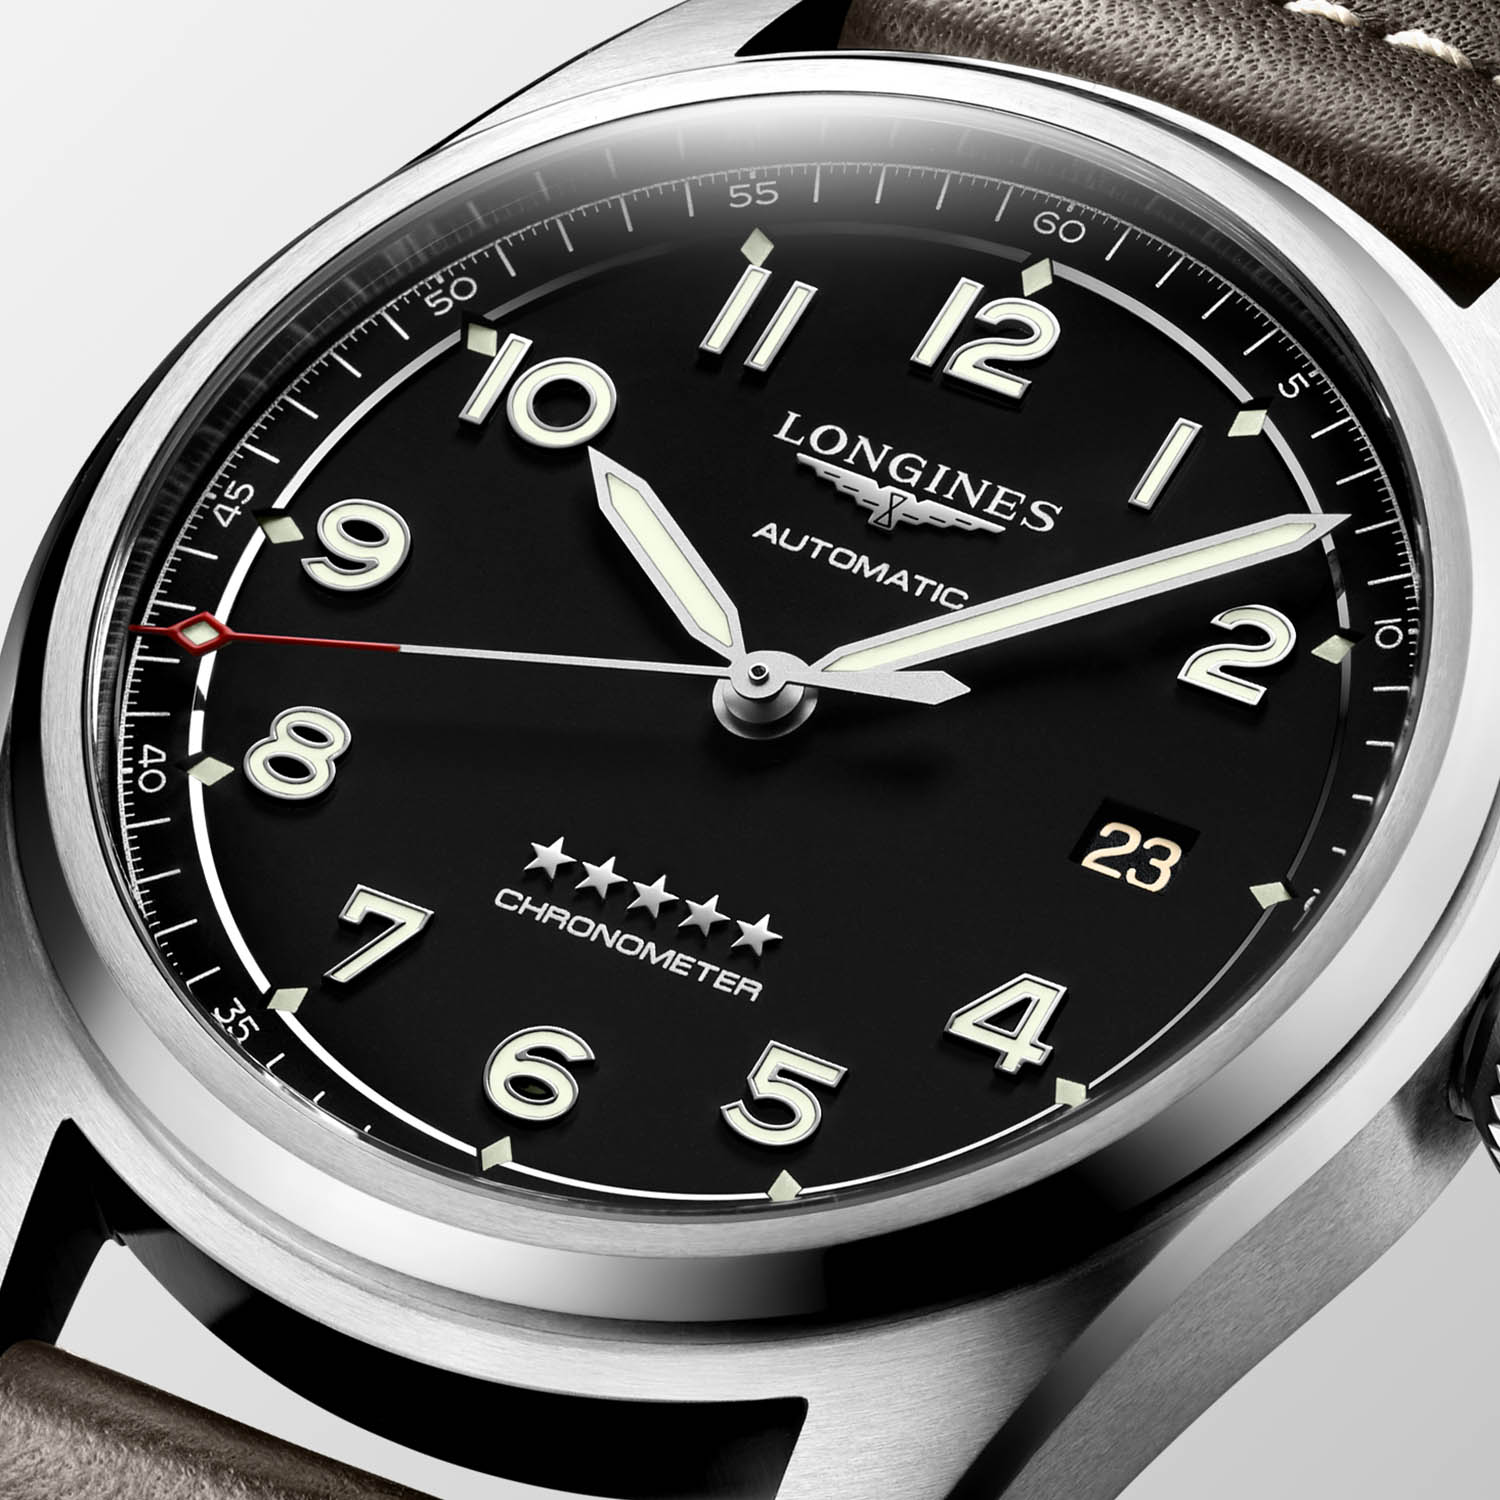 2020 Longines Spirit Time-and-Date - 5